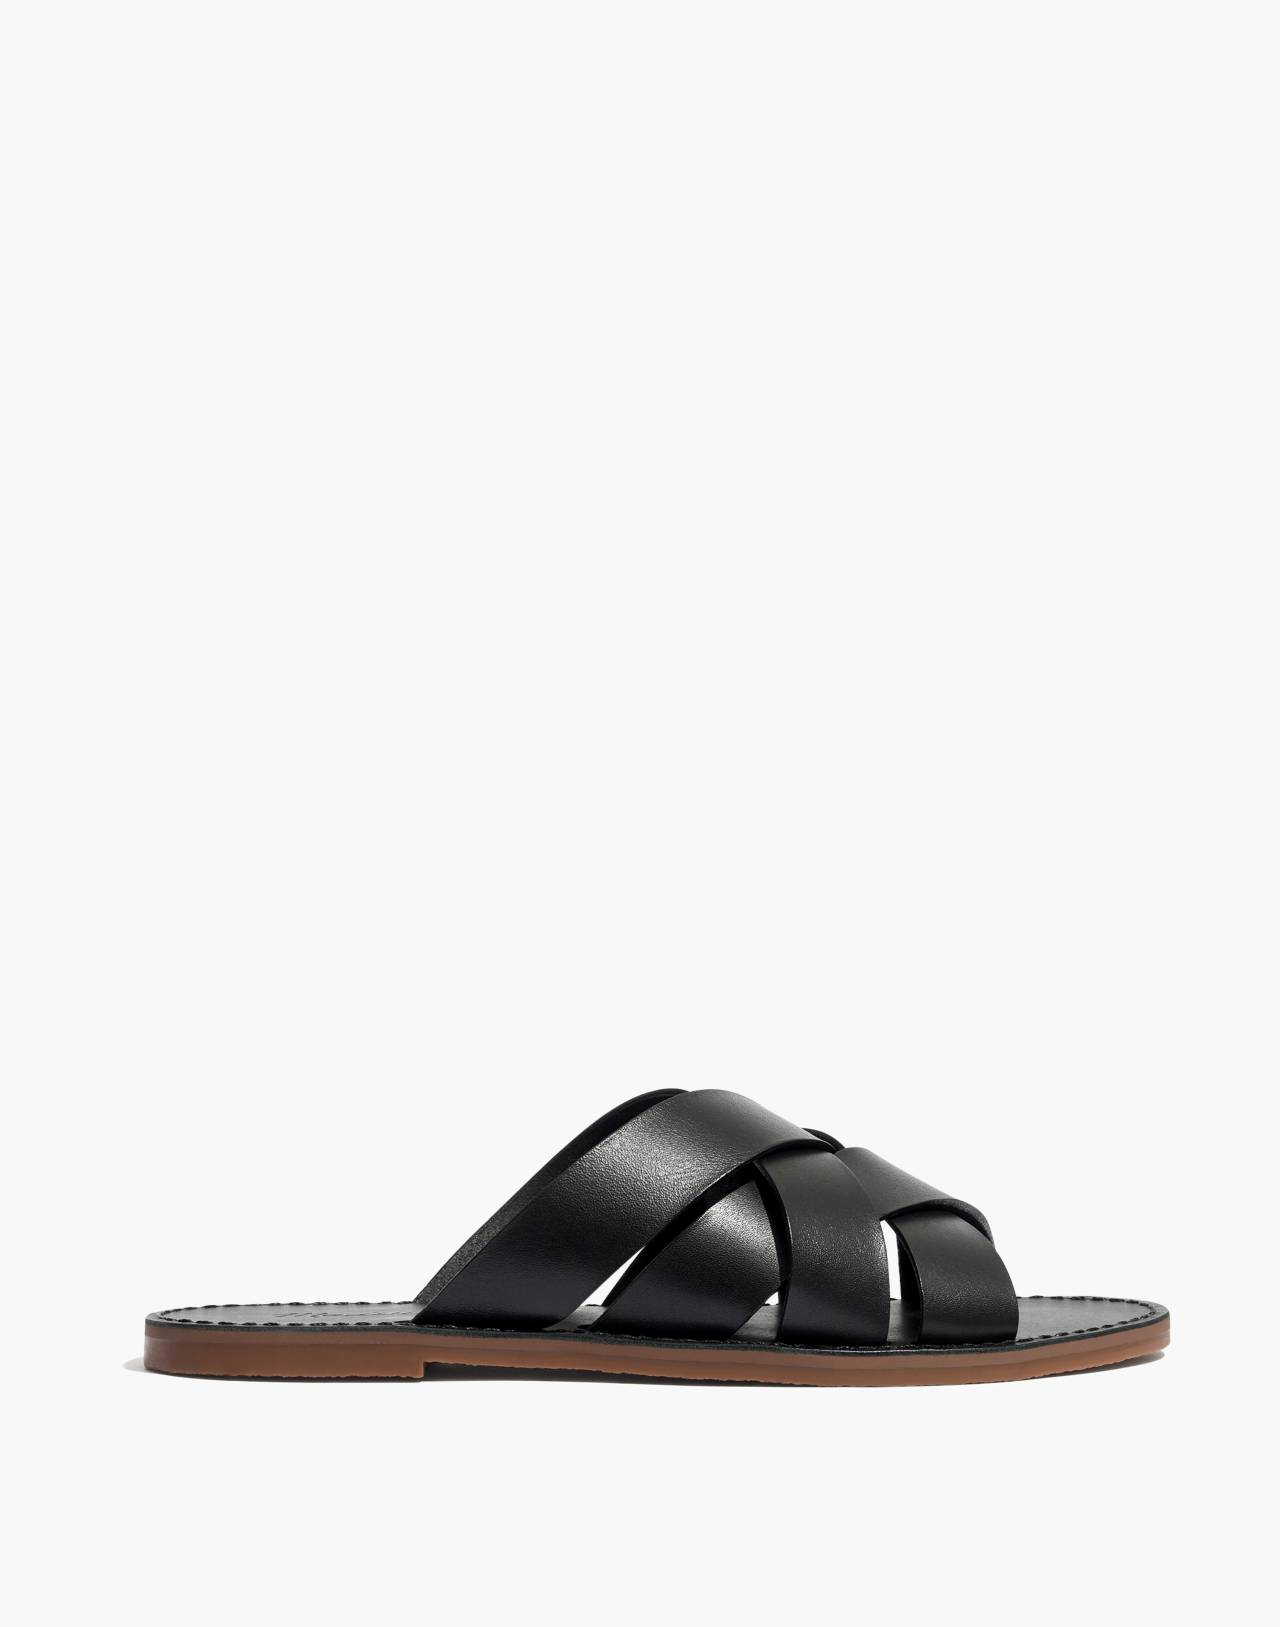 The Boardwalk Woven Slide Sandal in true black image 2